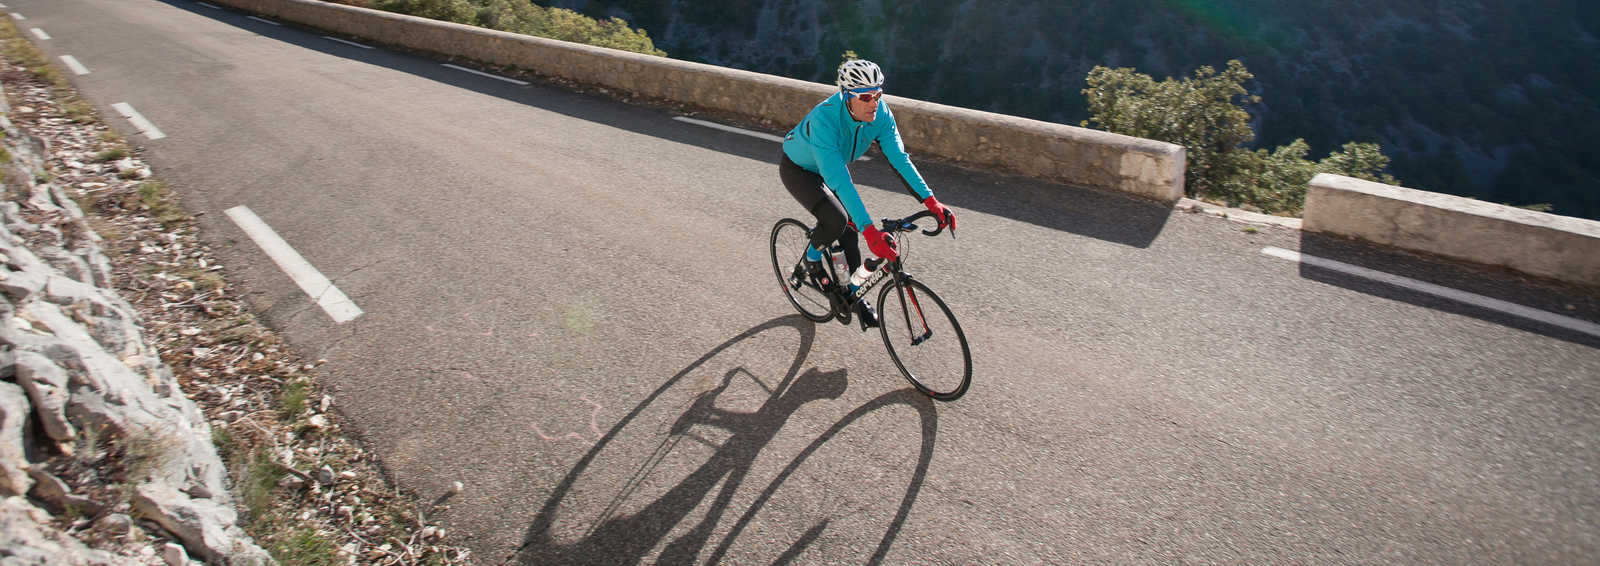 Cycling in the Nesque Gorges